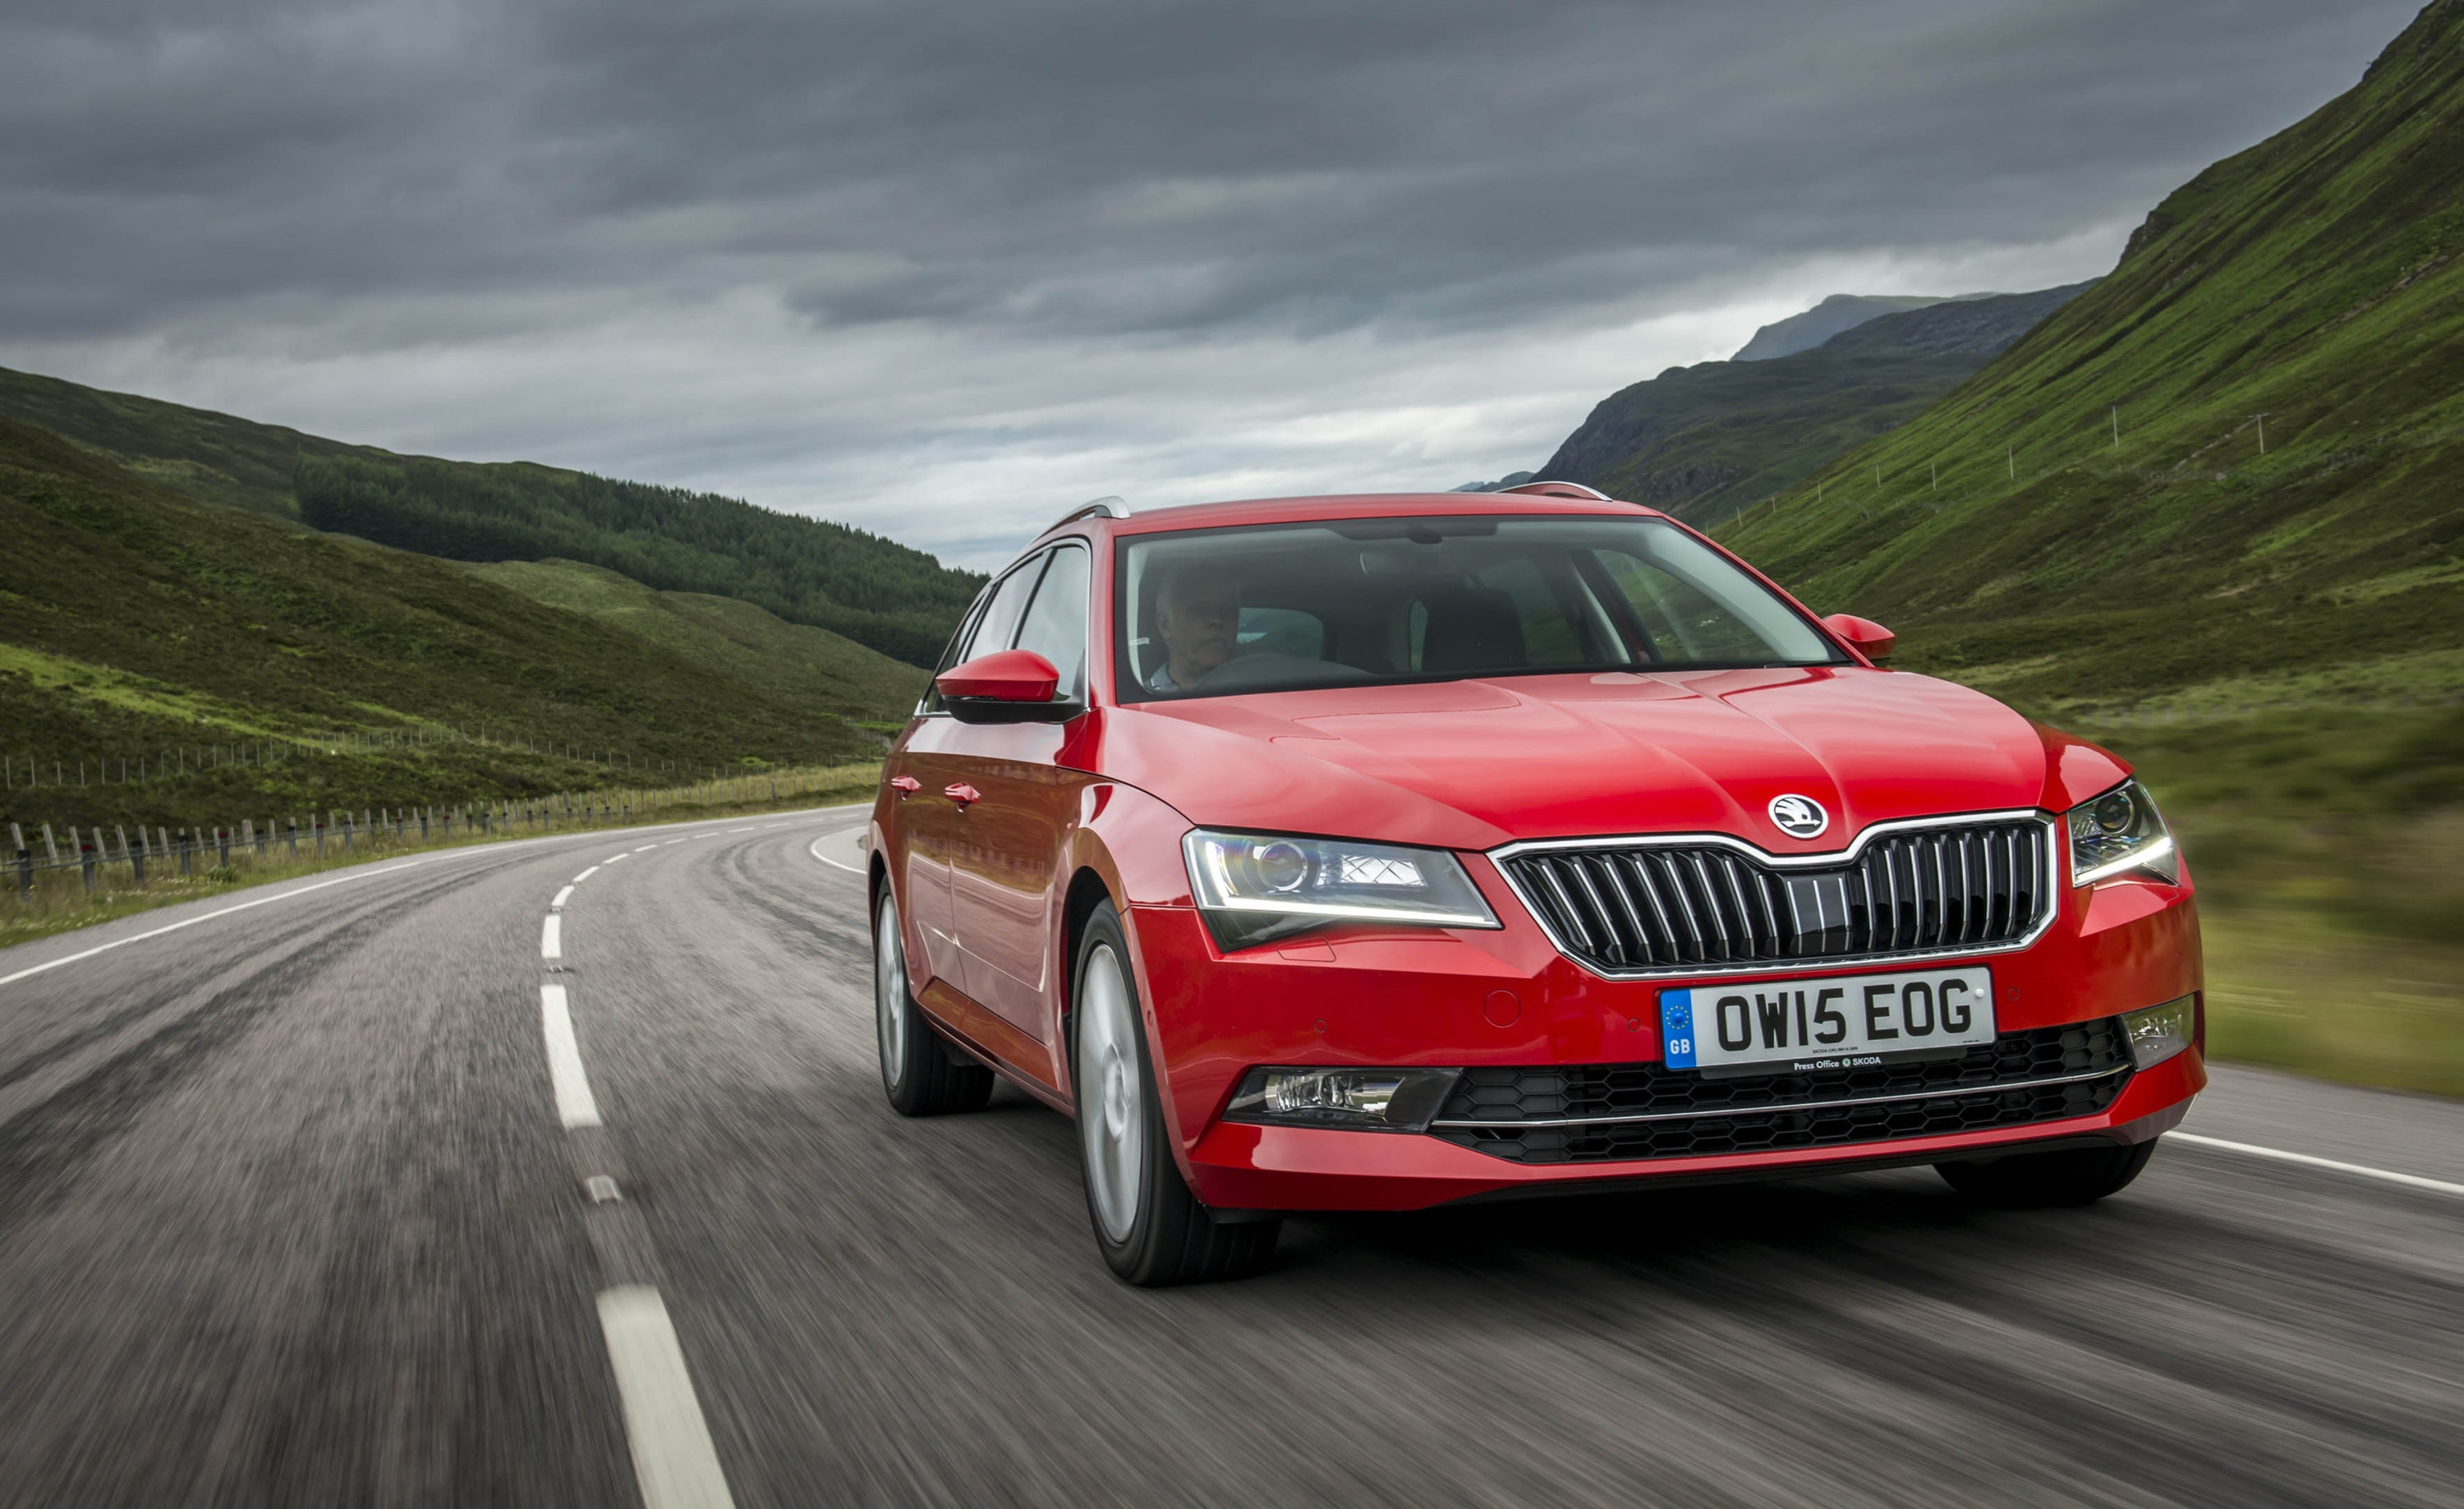 Red Skoda Superb driving on a road